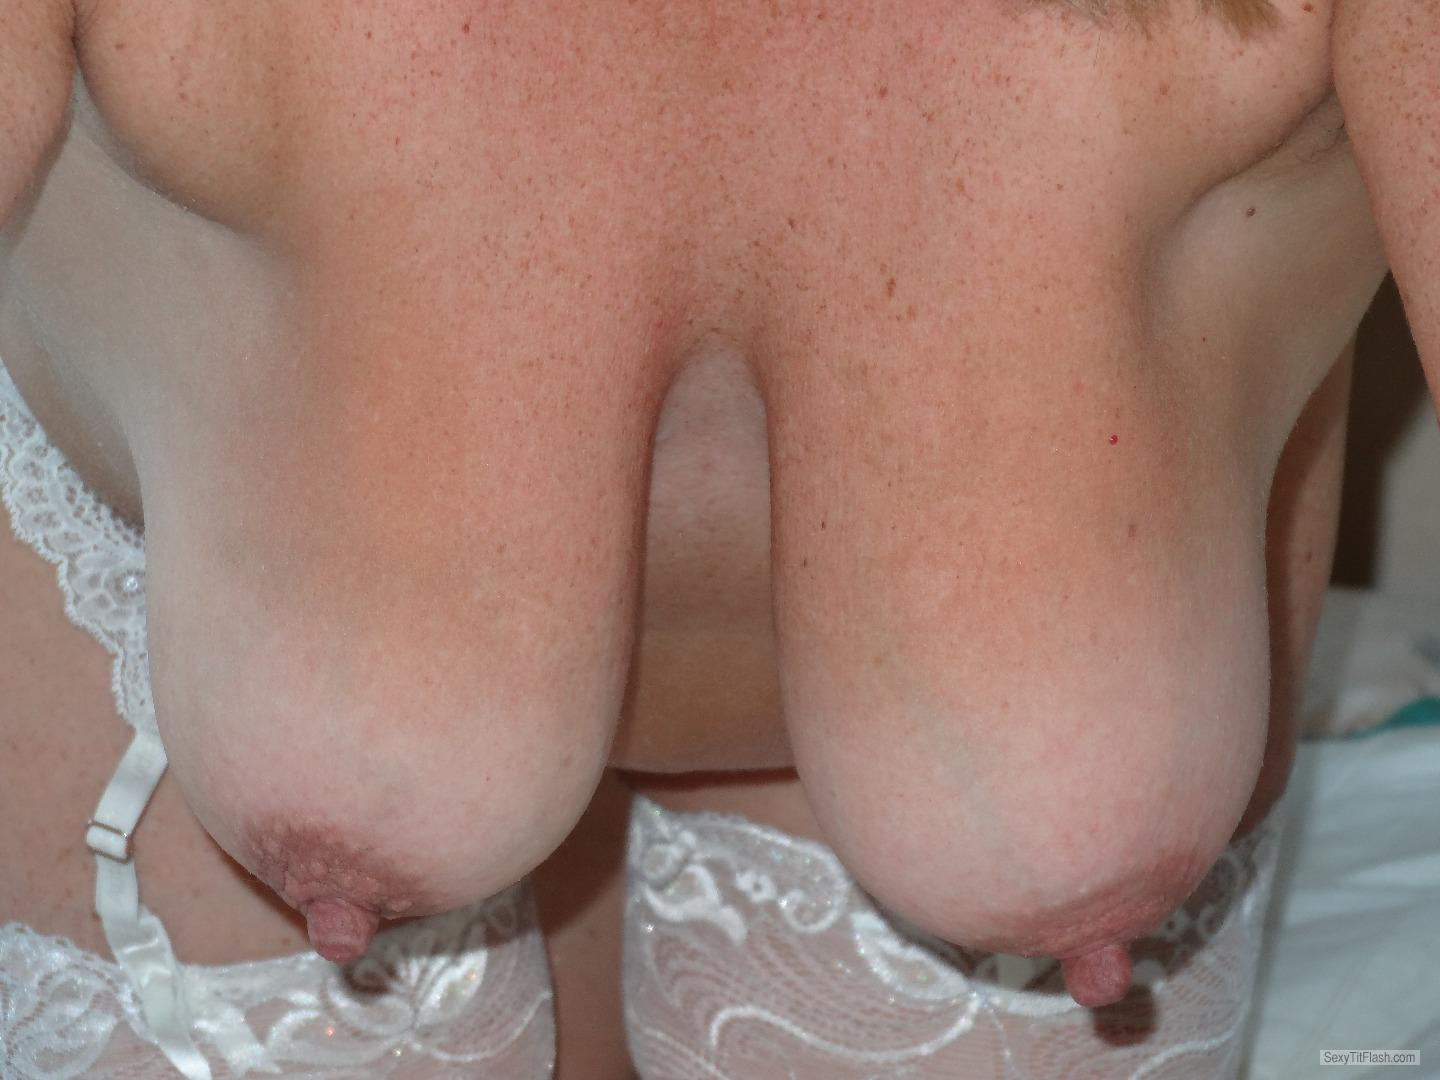 Tit Flash: My Medium Tits - Josie Juggs from United Kingdom